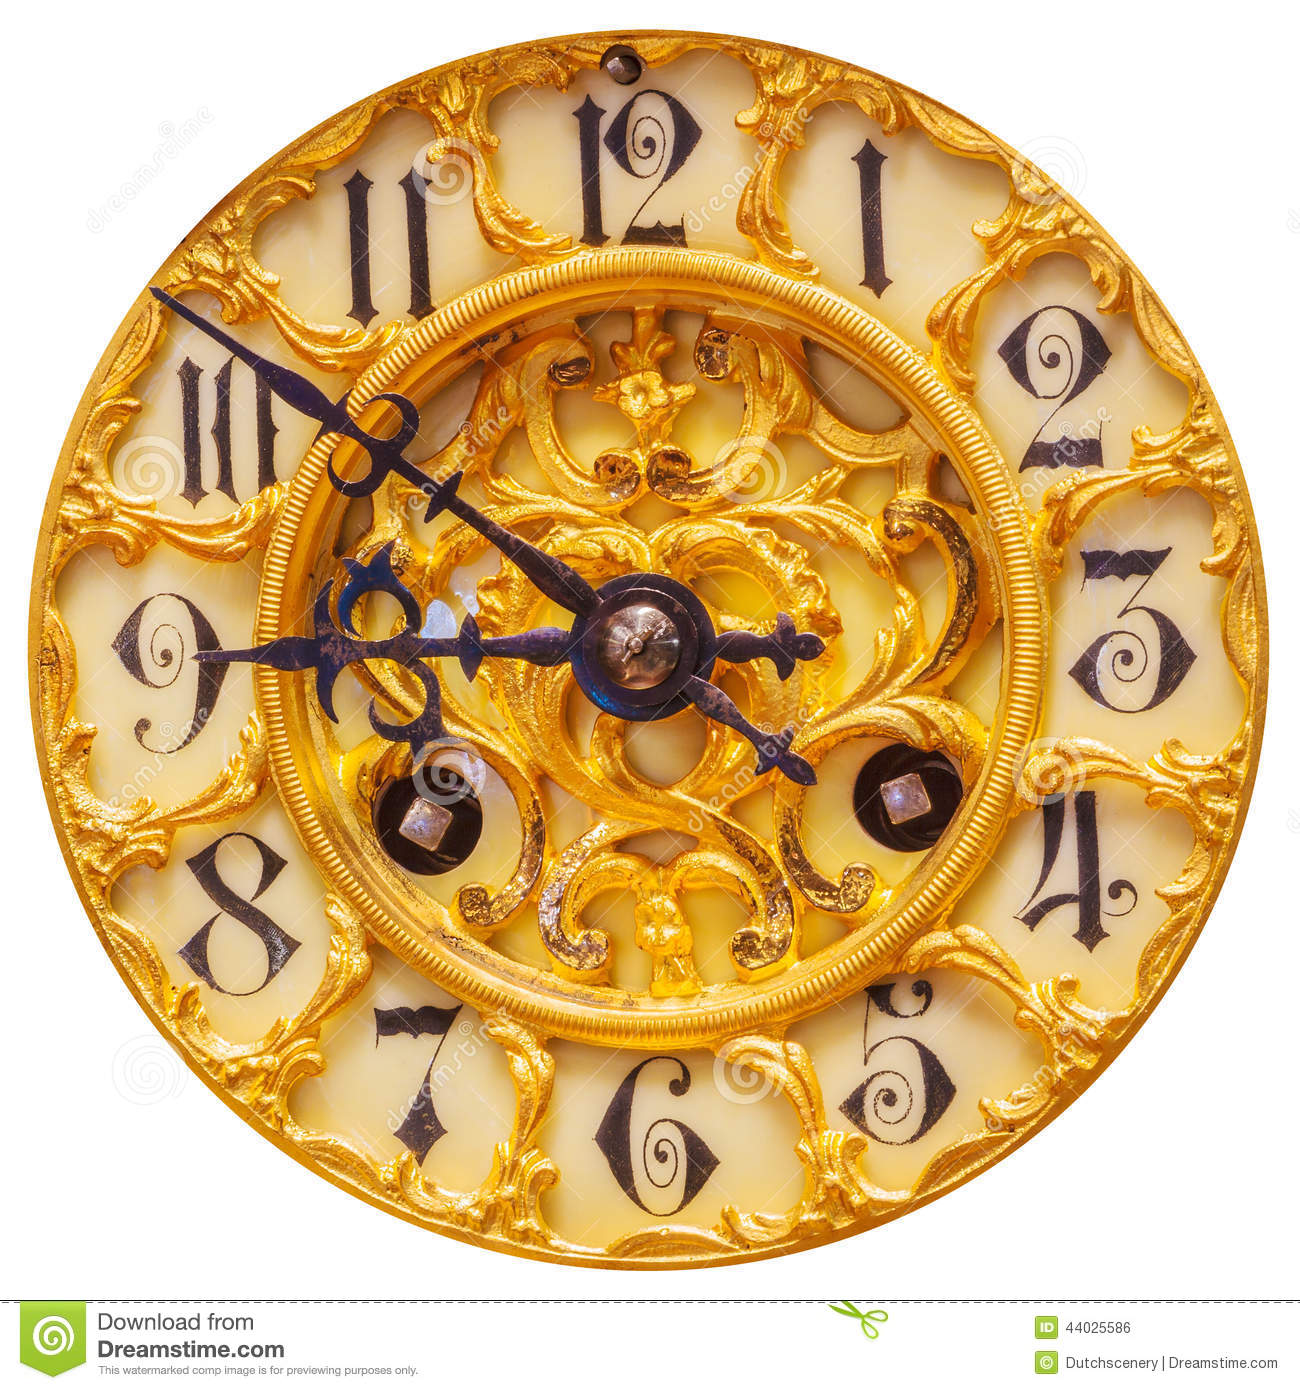 Rich decorated golden clock face isolated on white stock photo rich decorated golden clock face isolated on white gumiabroncs Choice Image